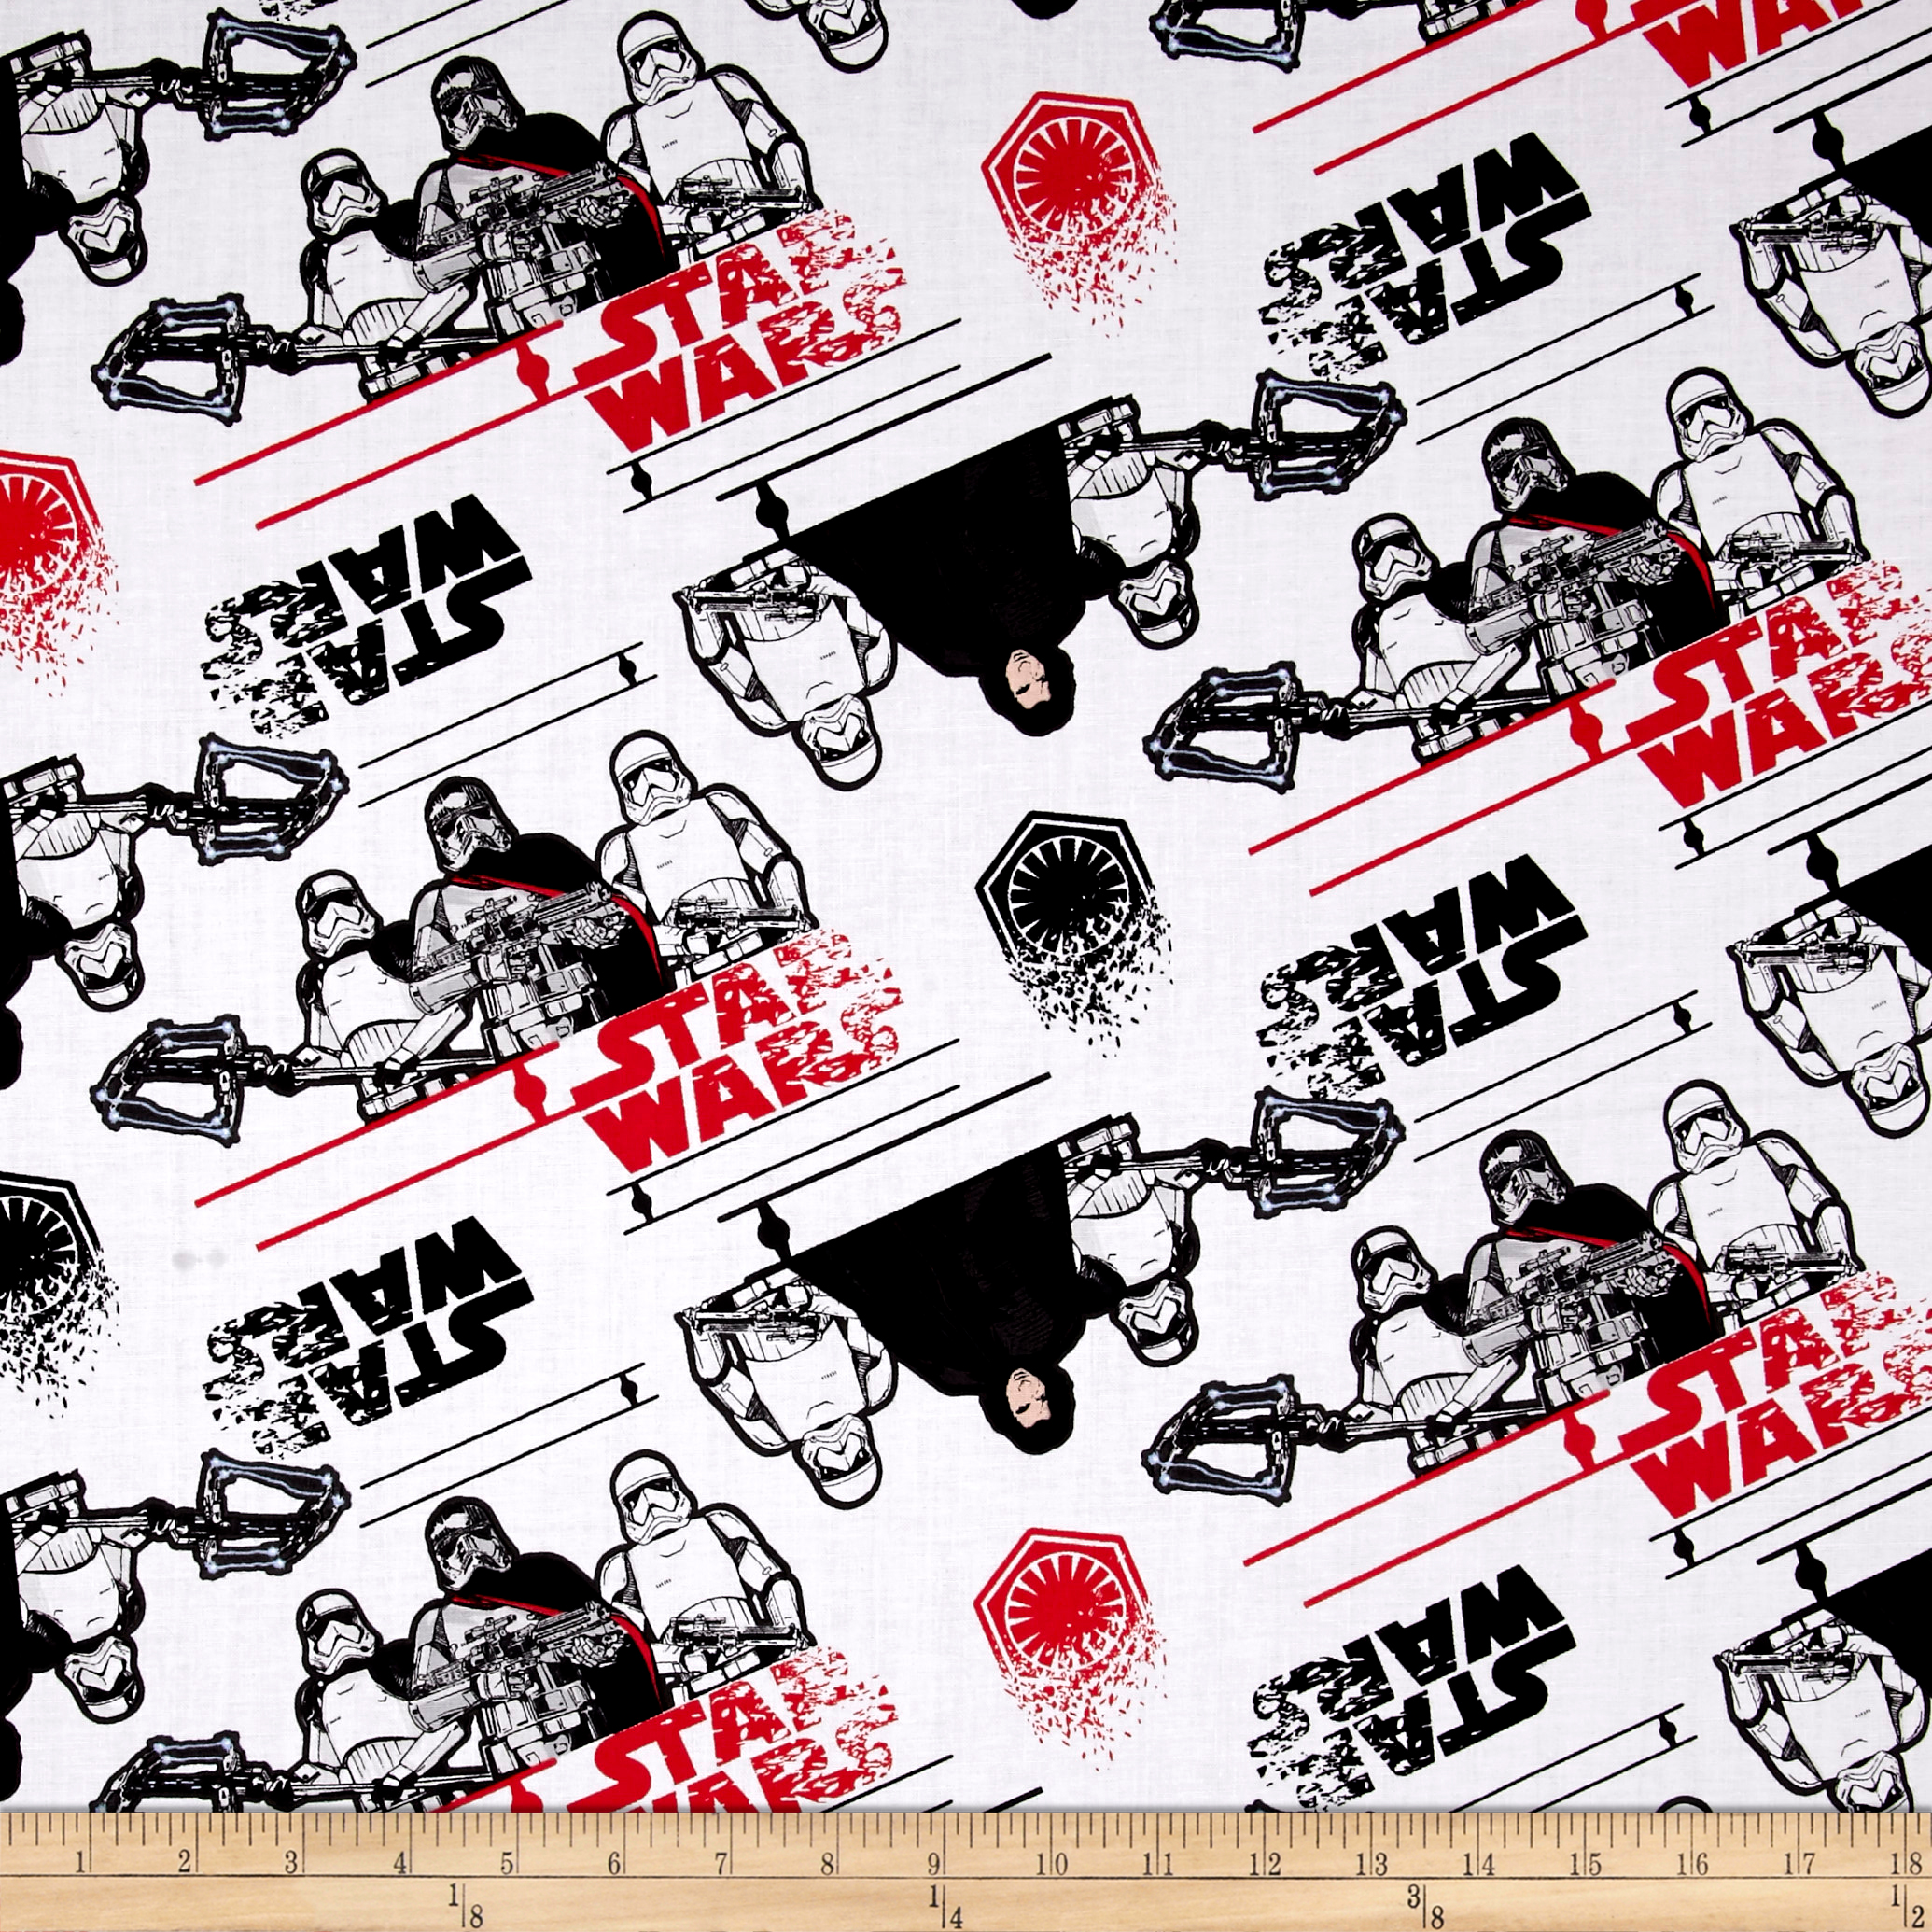 Star Wars The Last Jedi First Order White Fabric 0555400